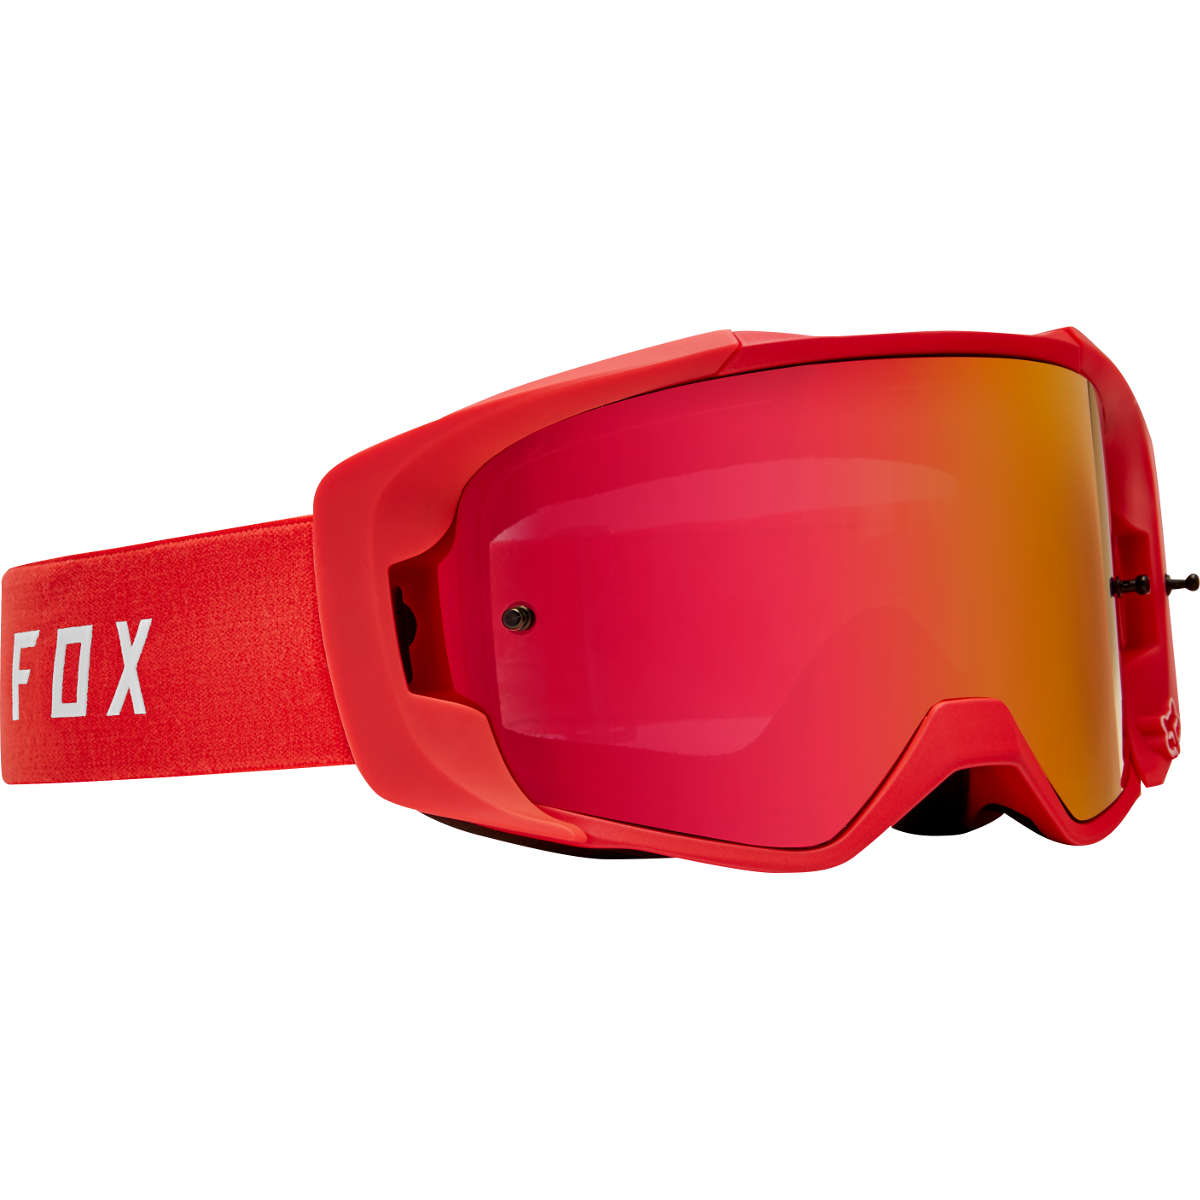 21247-003-NS fox racing vue motocross offroad goggle red masque brille crossbril lunette